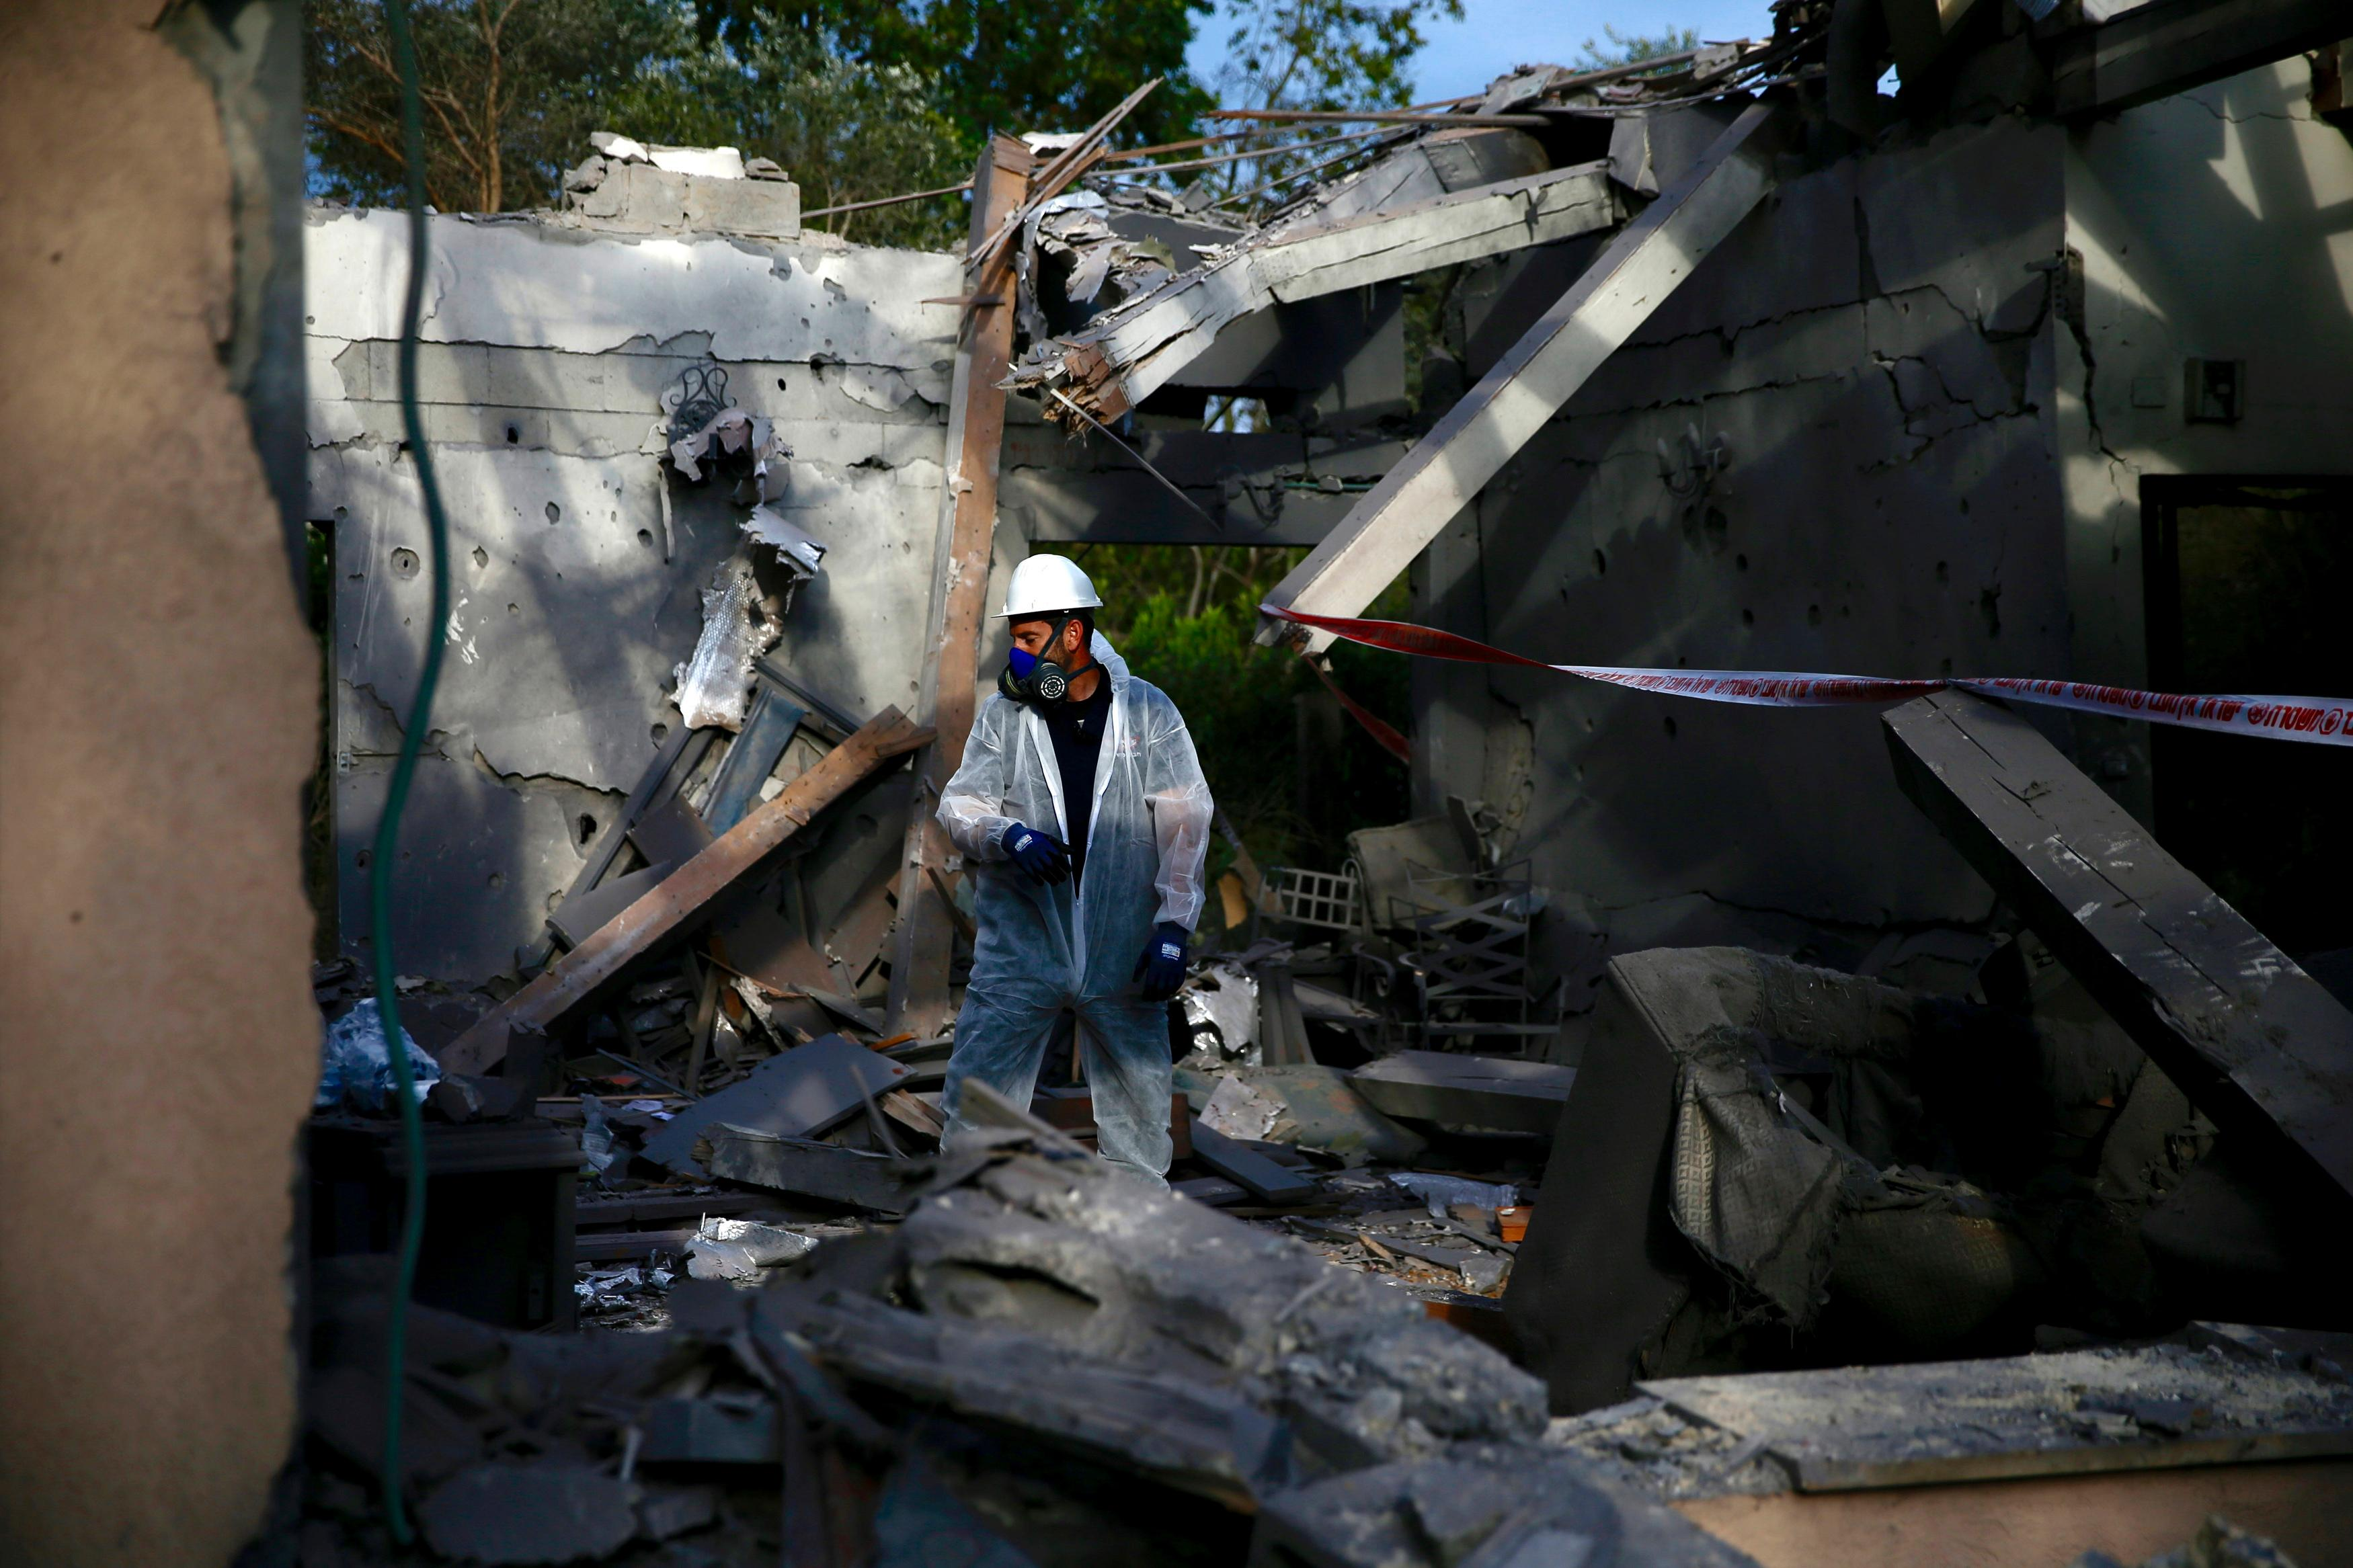 An Israeli police officer inspects the damage to a house hit by a rocket in Mishmeret, central Israel, Monday, March 25.{ } (AP Photo/Ariel Schalit)